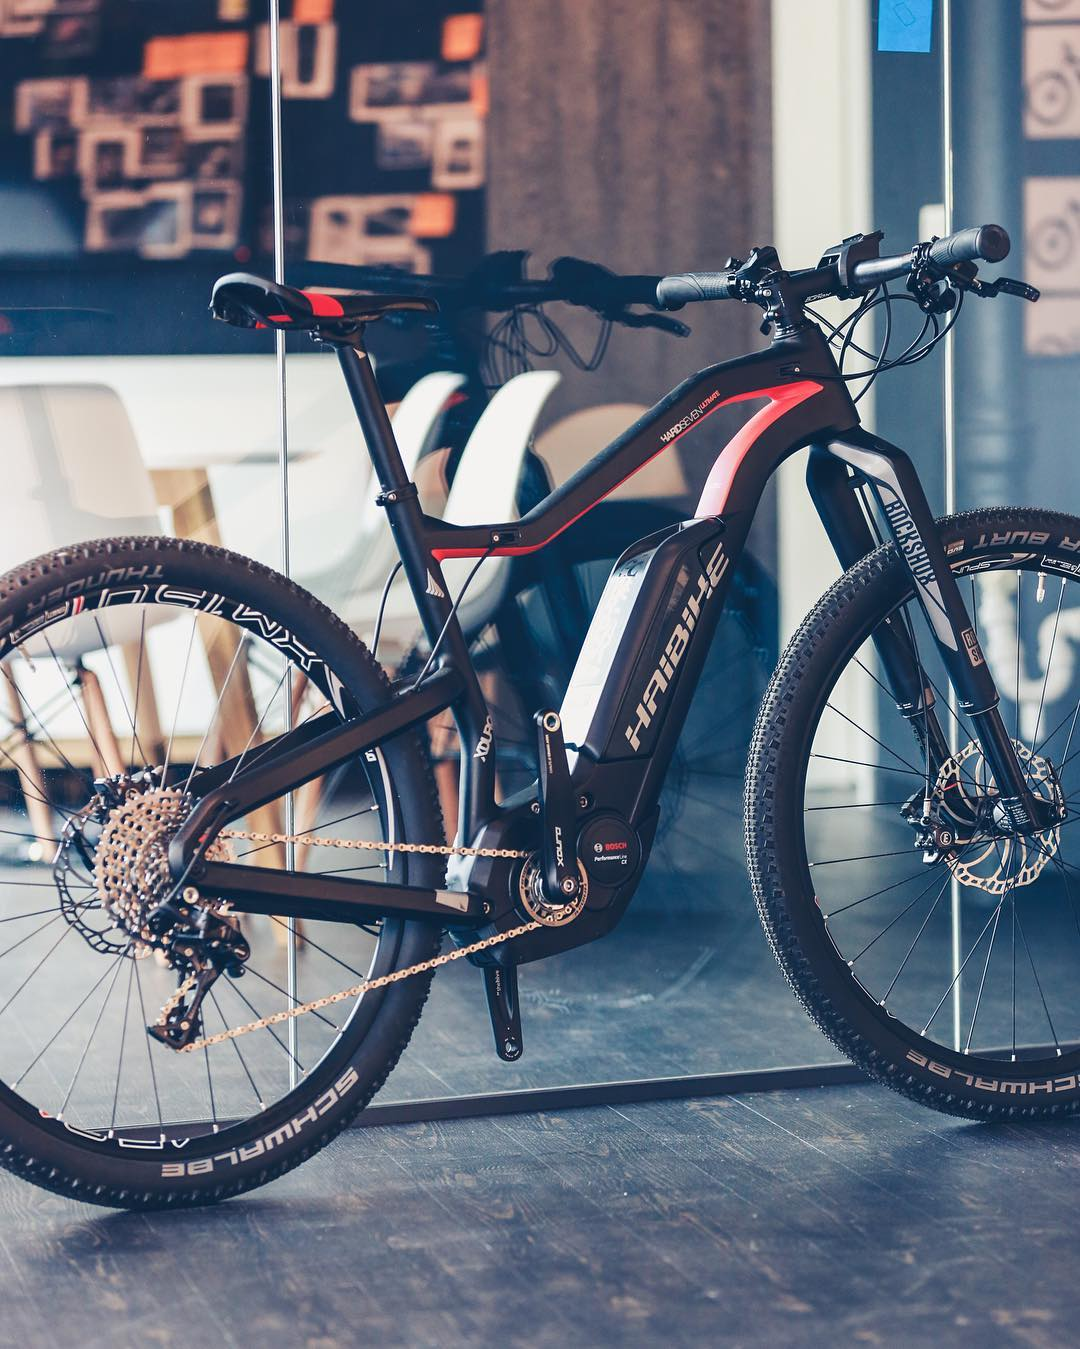 In the studio. The #XDURO #hardseven #rs1 #haibike #design #mtb